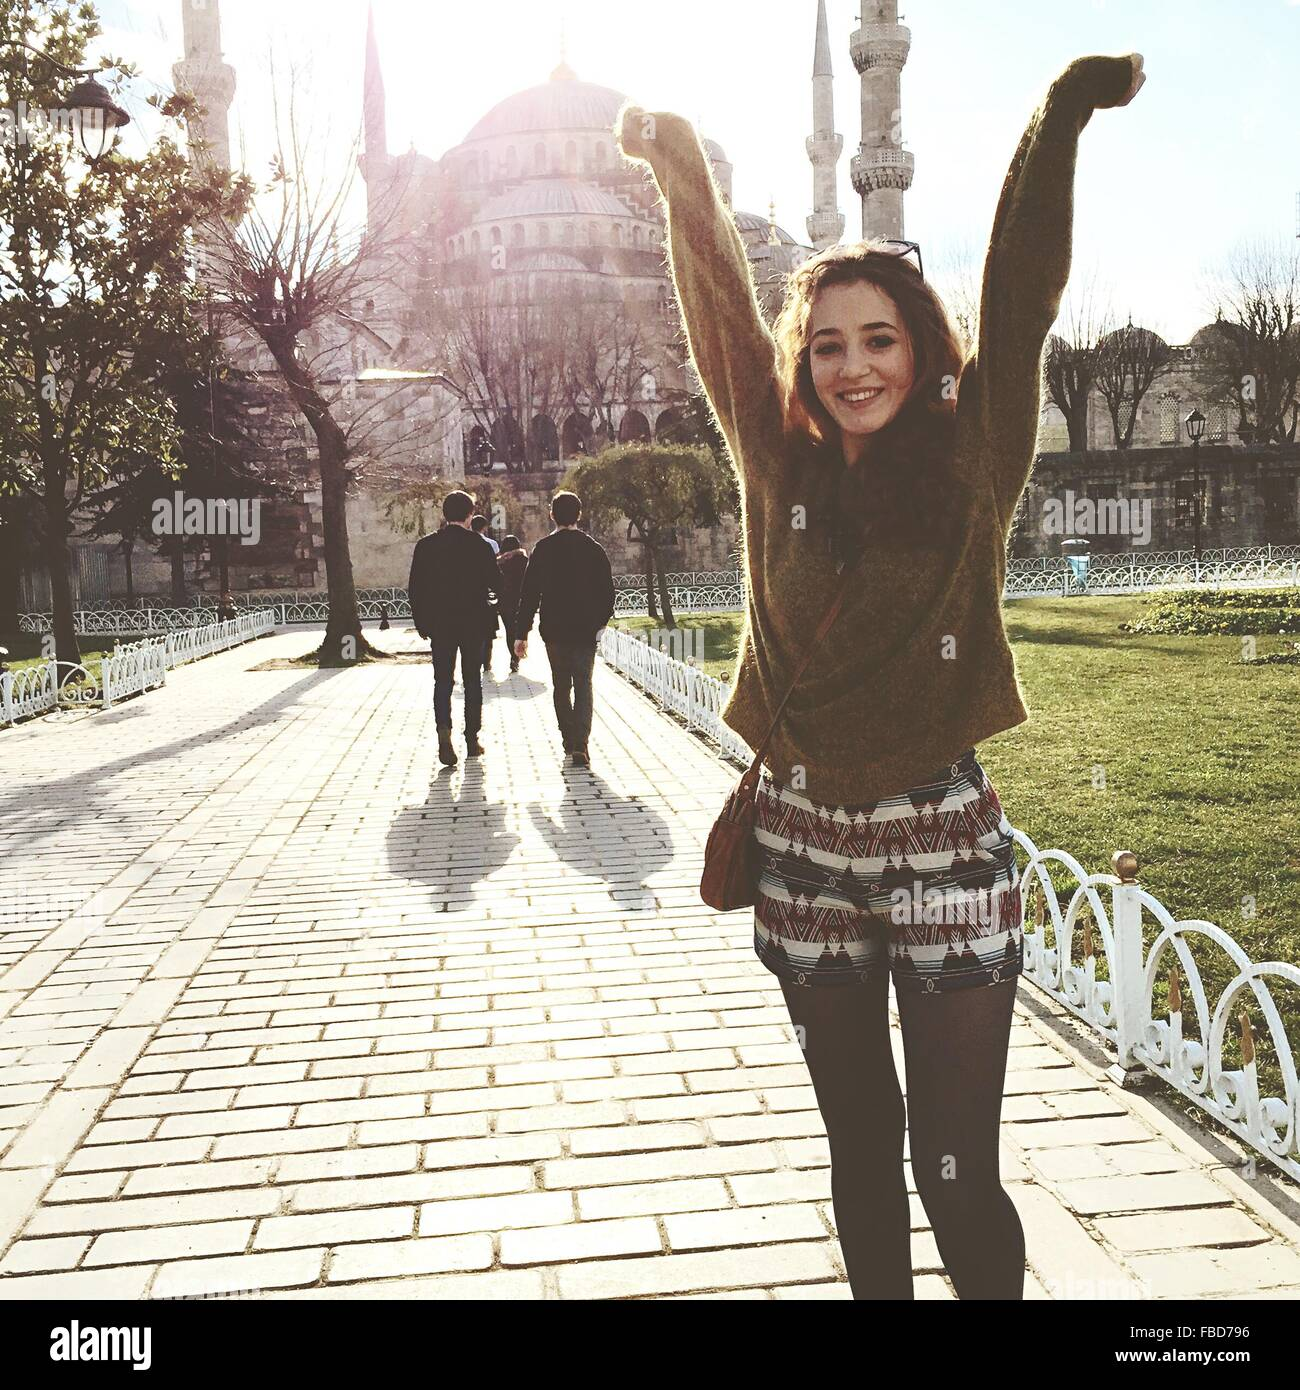 Portrait Of Young Woman, Mosque In Background - Stock Image